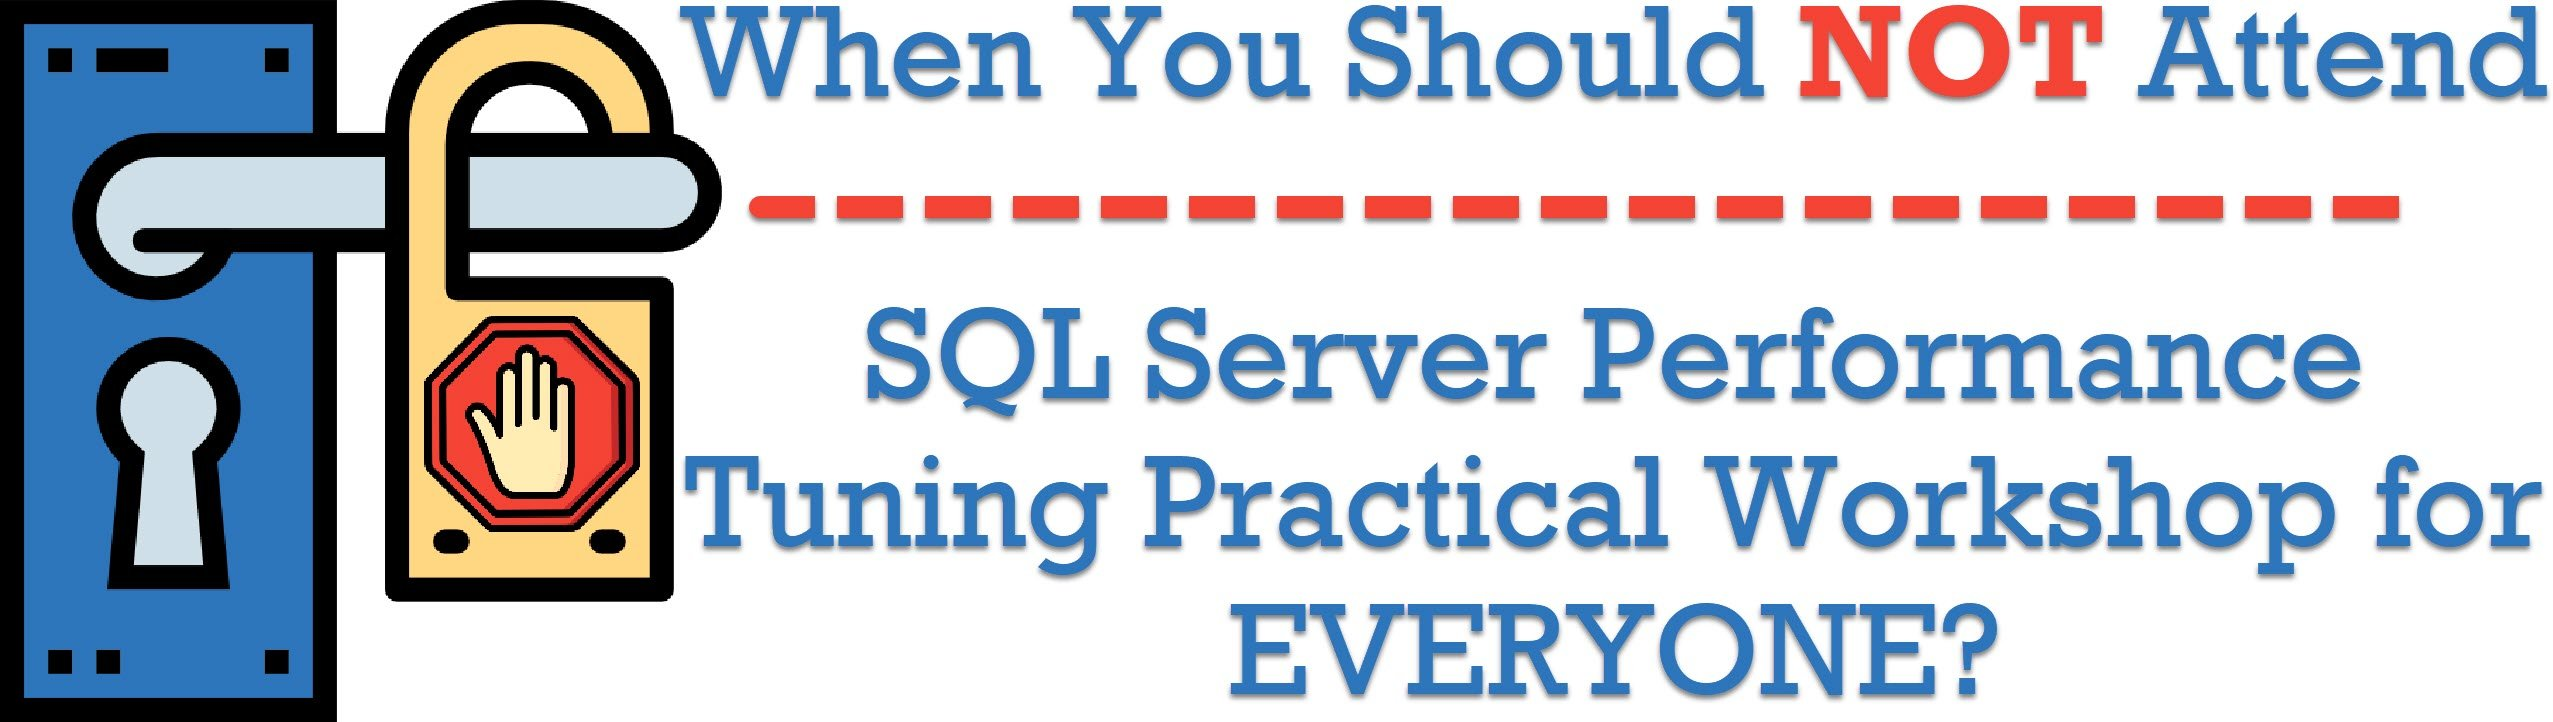 SQL SERVER - When You Should Not Attend SQL Server Performance Tuning Practical Workshop for EVERYONE? practicalperformancetuning